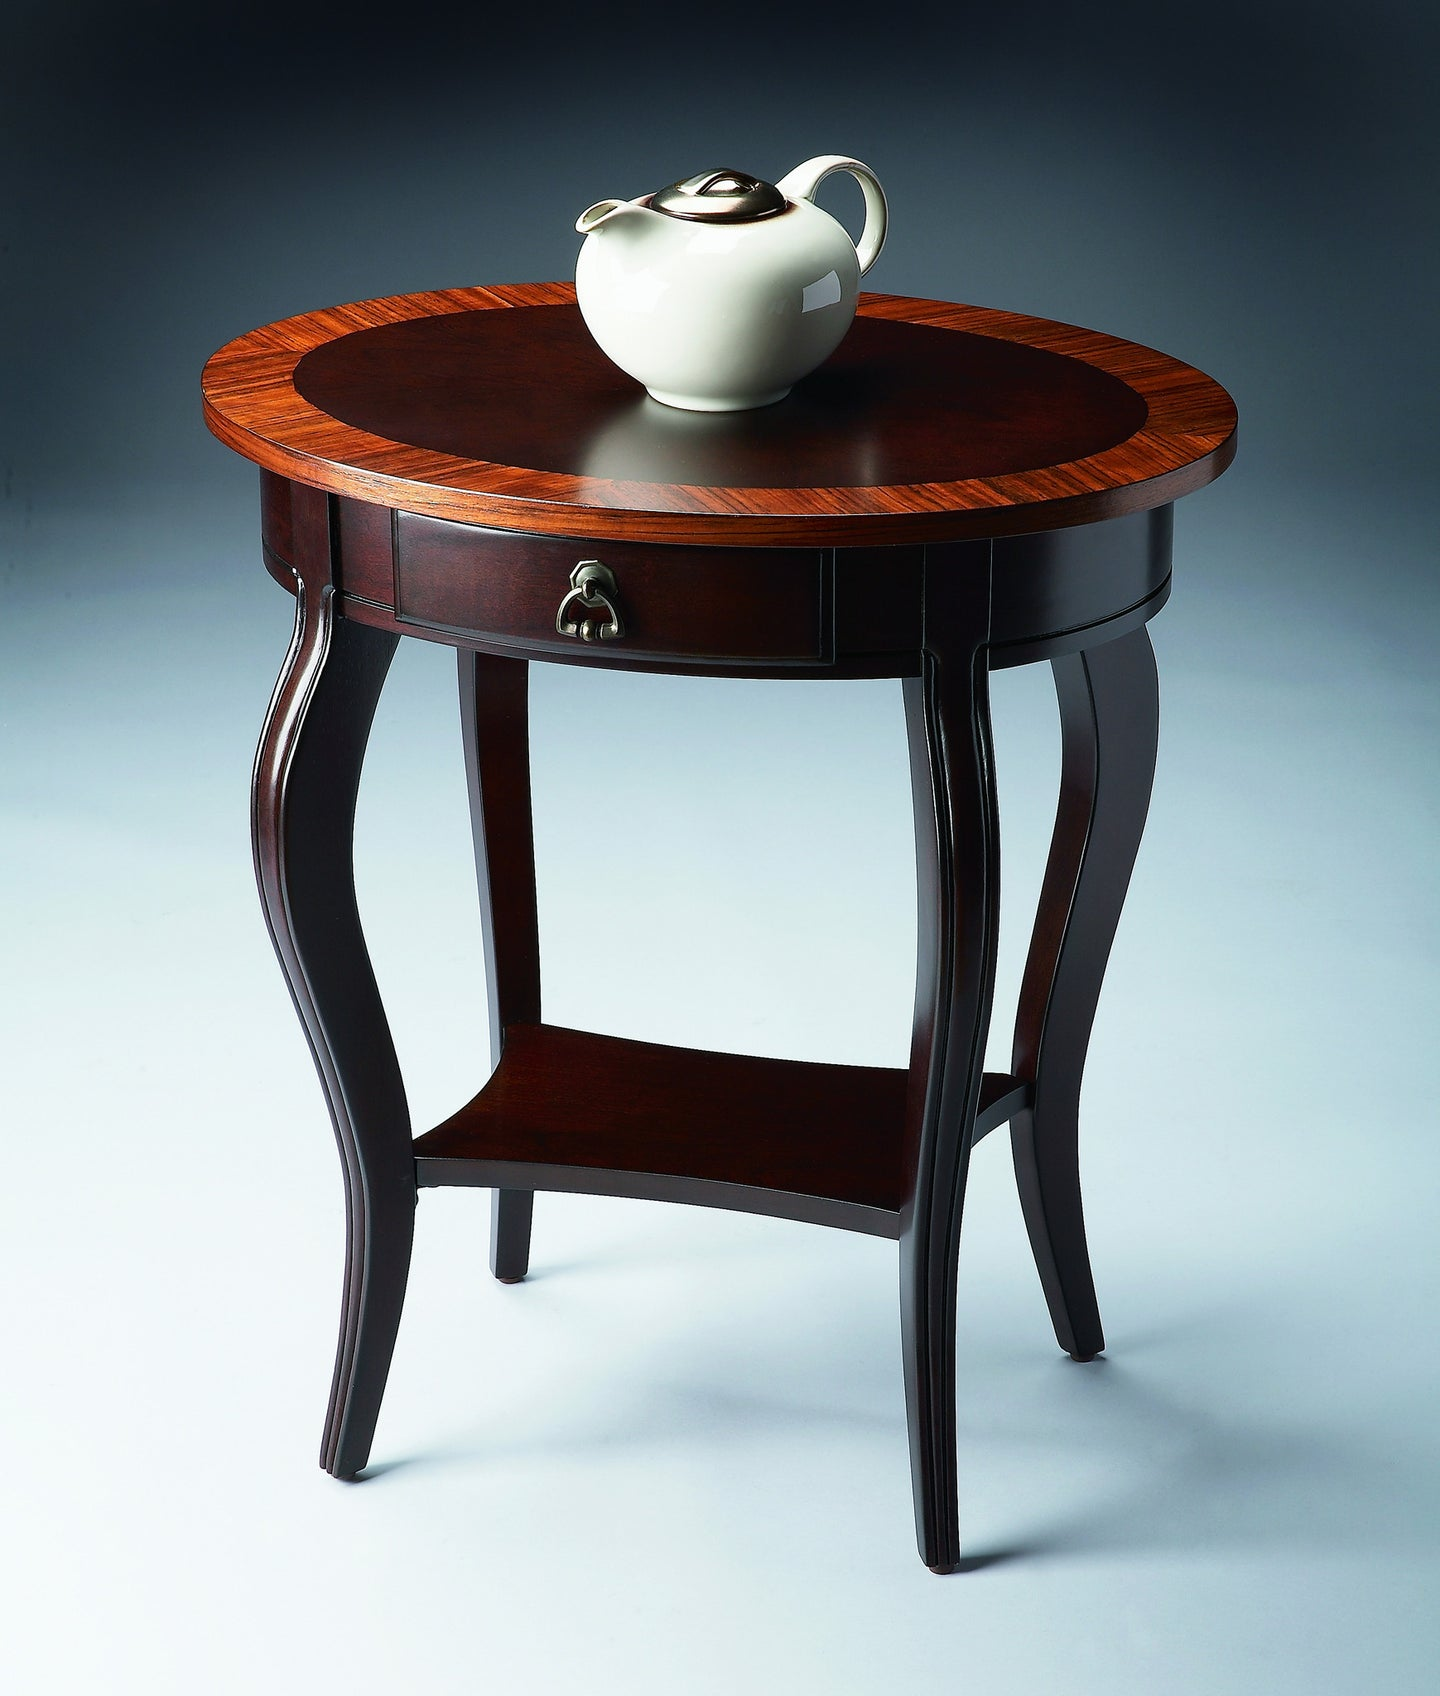 Jeanette Cherry Nouveau Oval Accent Table by Butler Specialty Company 0532211